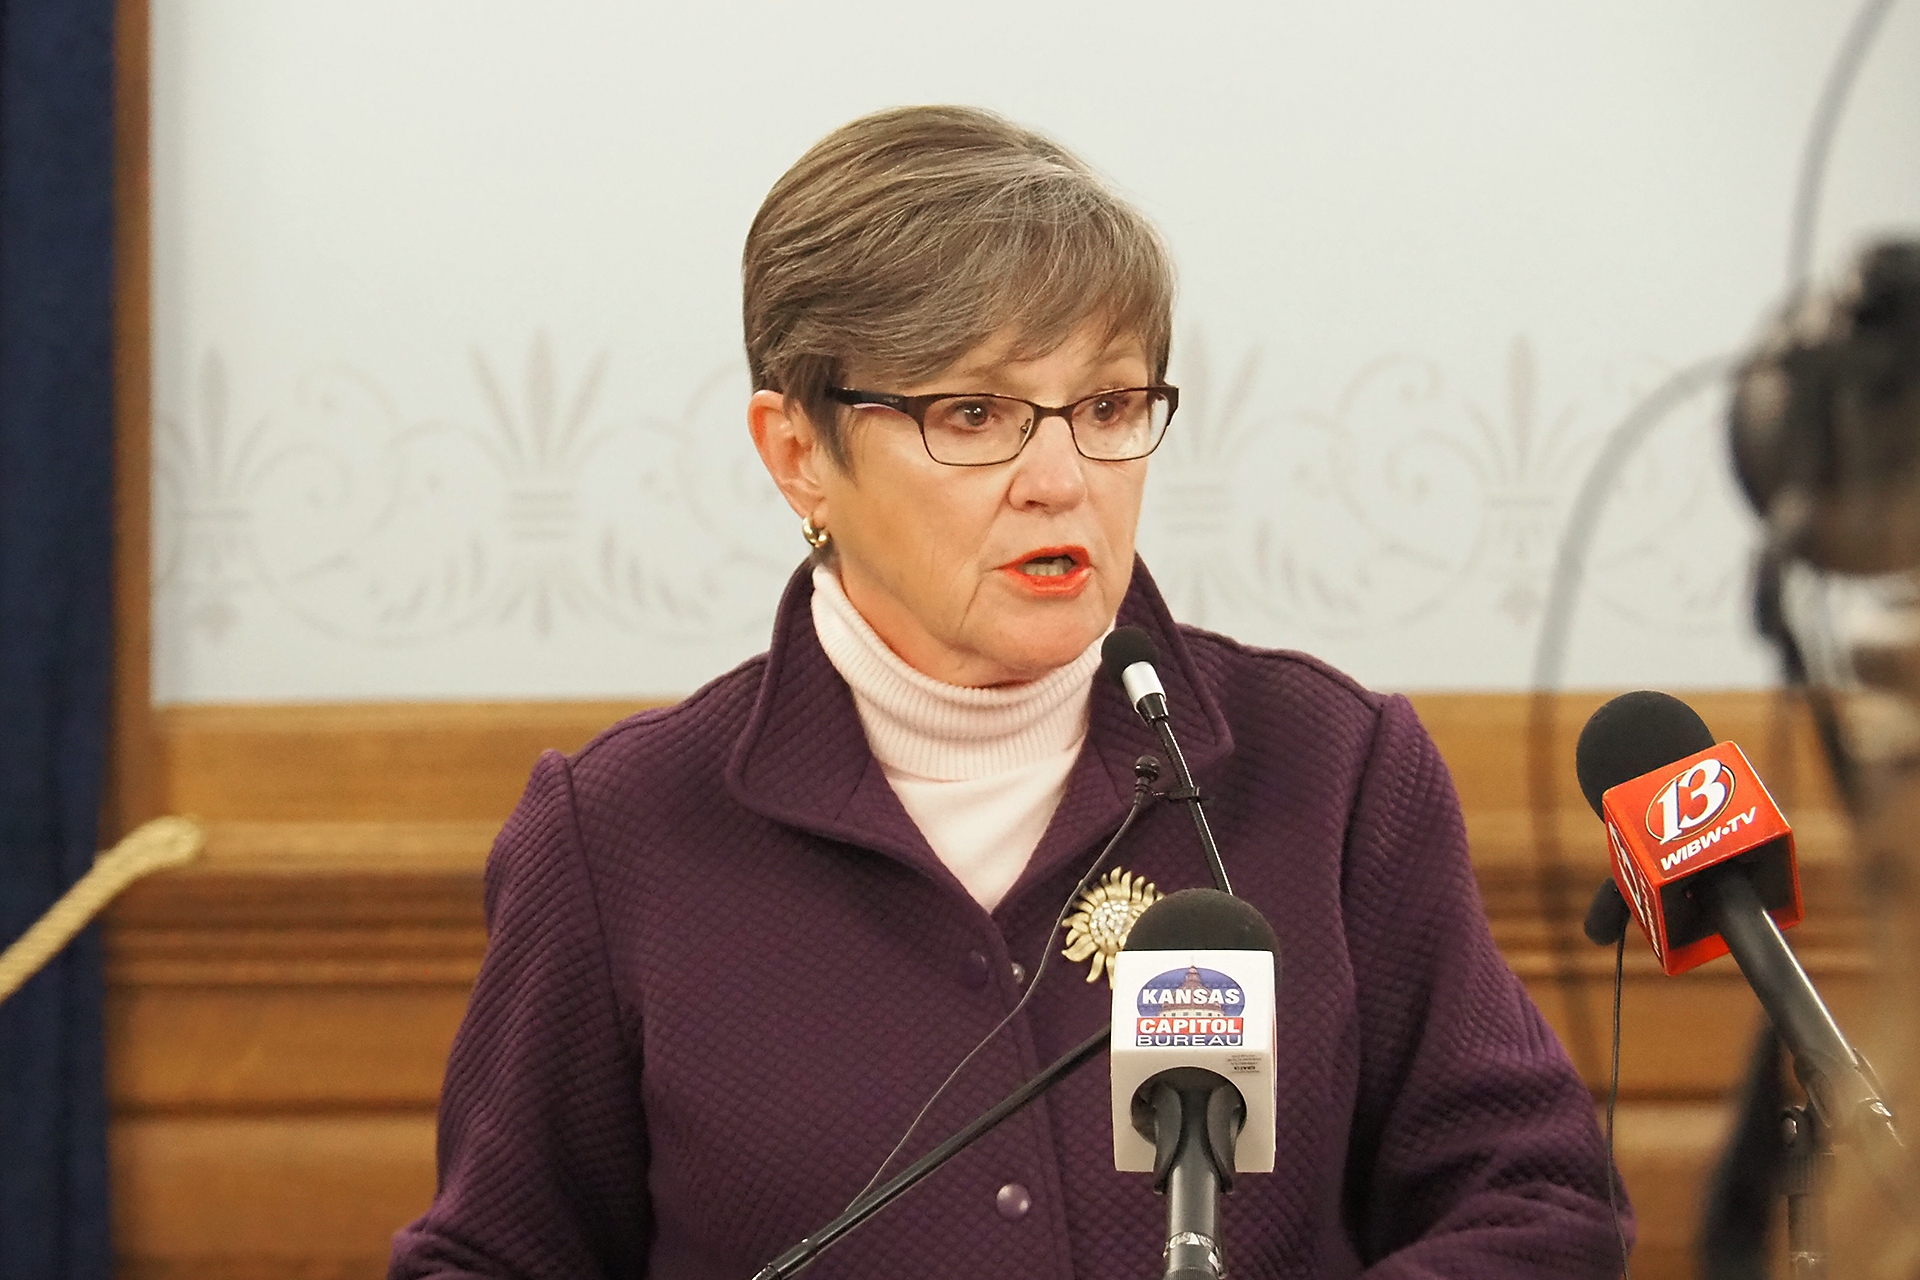 Gov. Laura Kelly vetoed Senate Bill 50 containing tax reform provisions sought by the Republican majority in the Legislature but labeled by the Democratic governor as